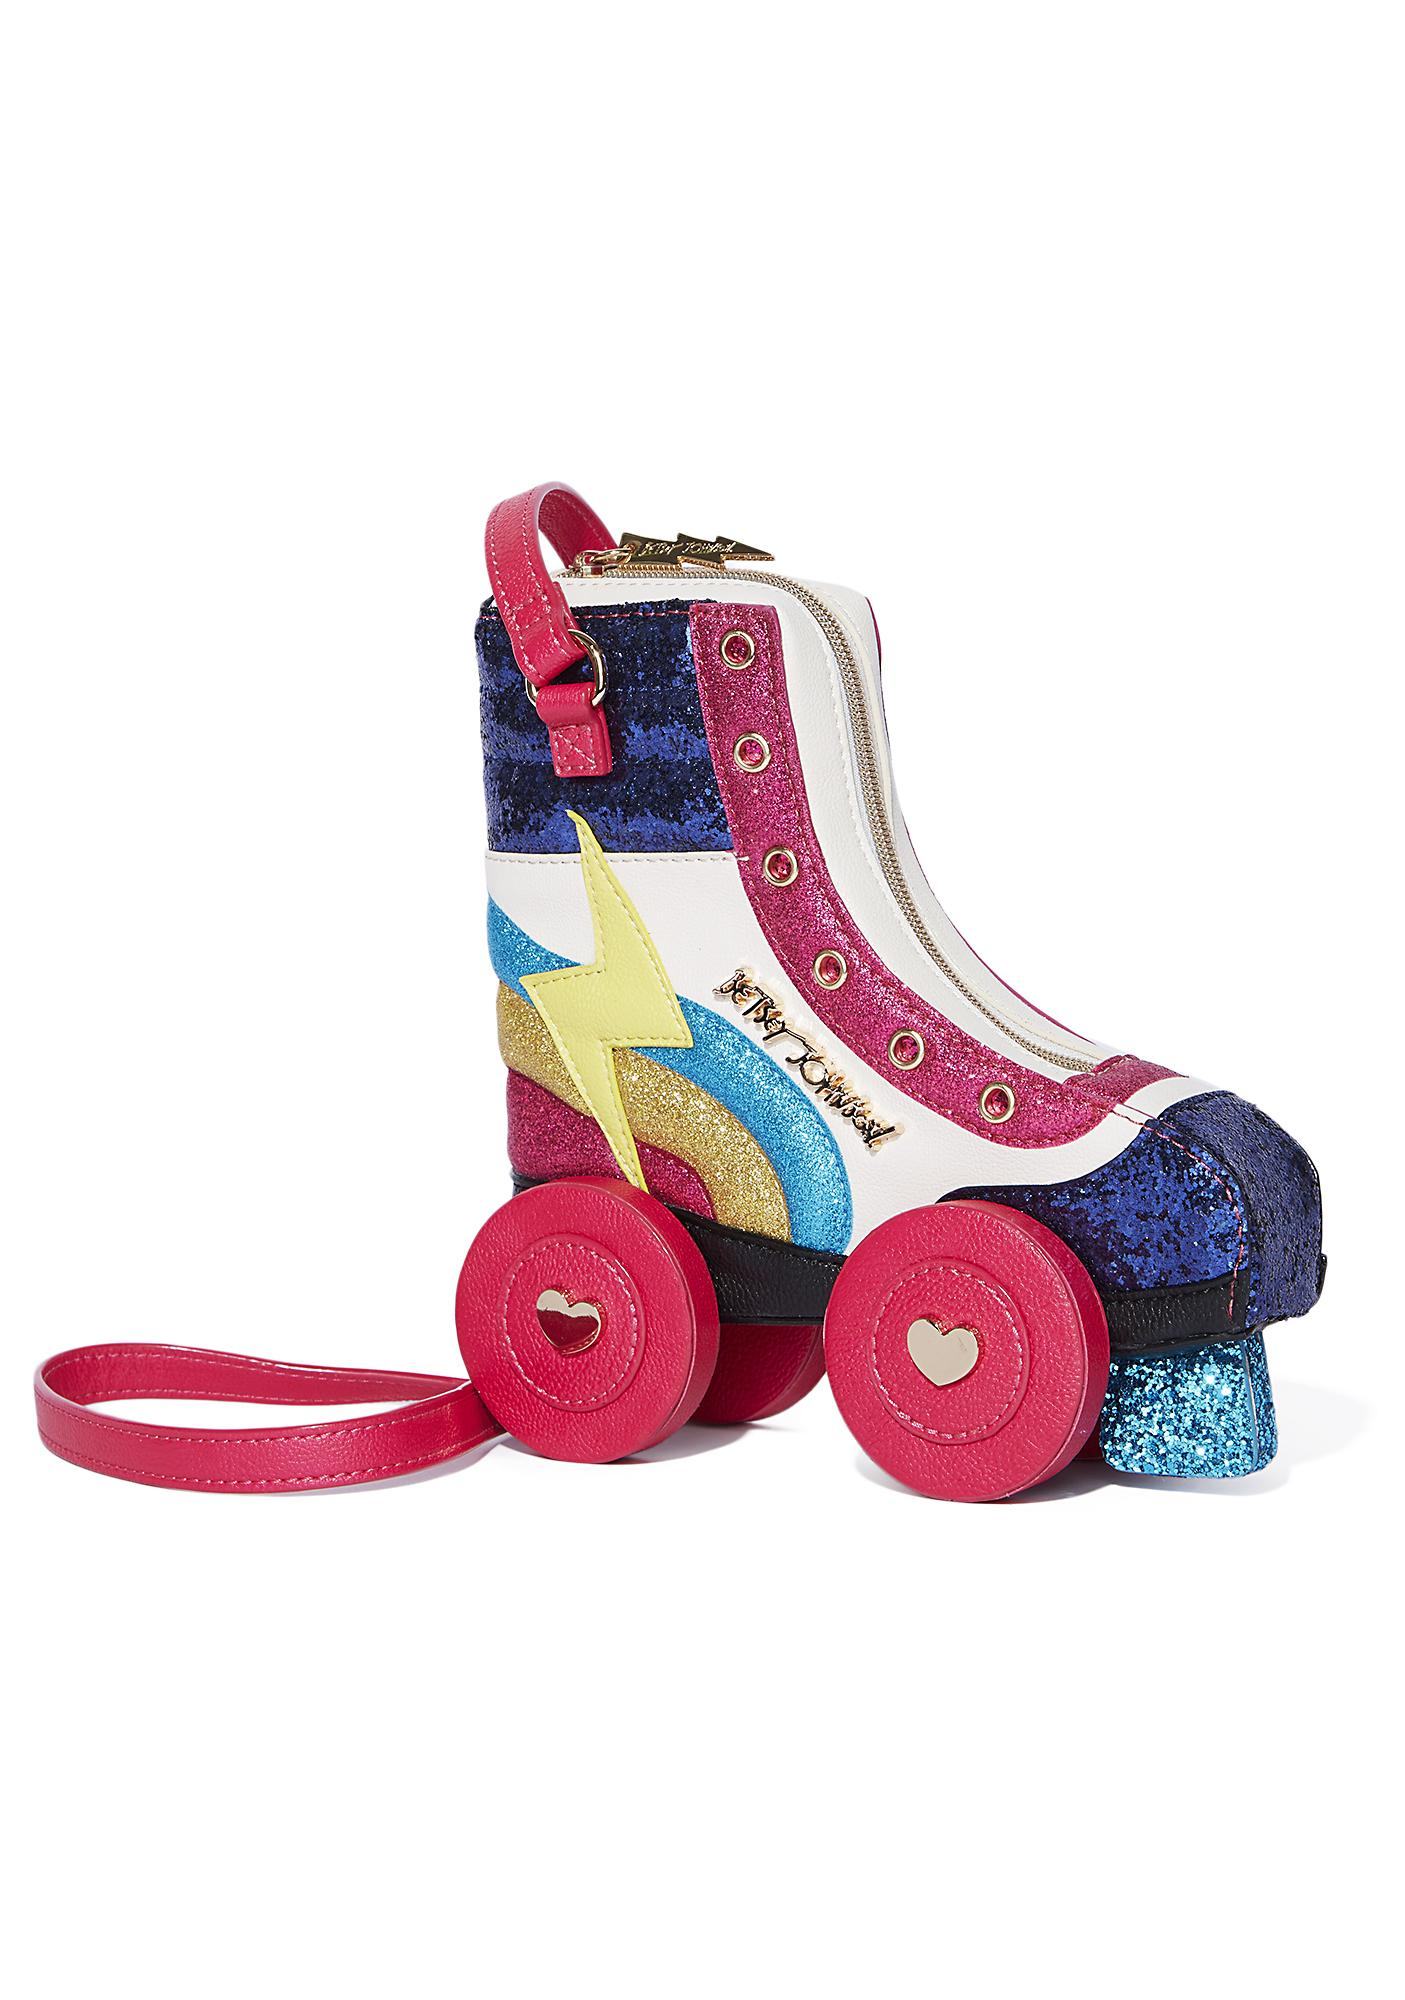 Betsey Johnson Rollergirl Crossbody